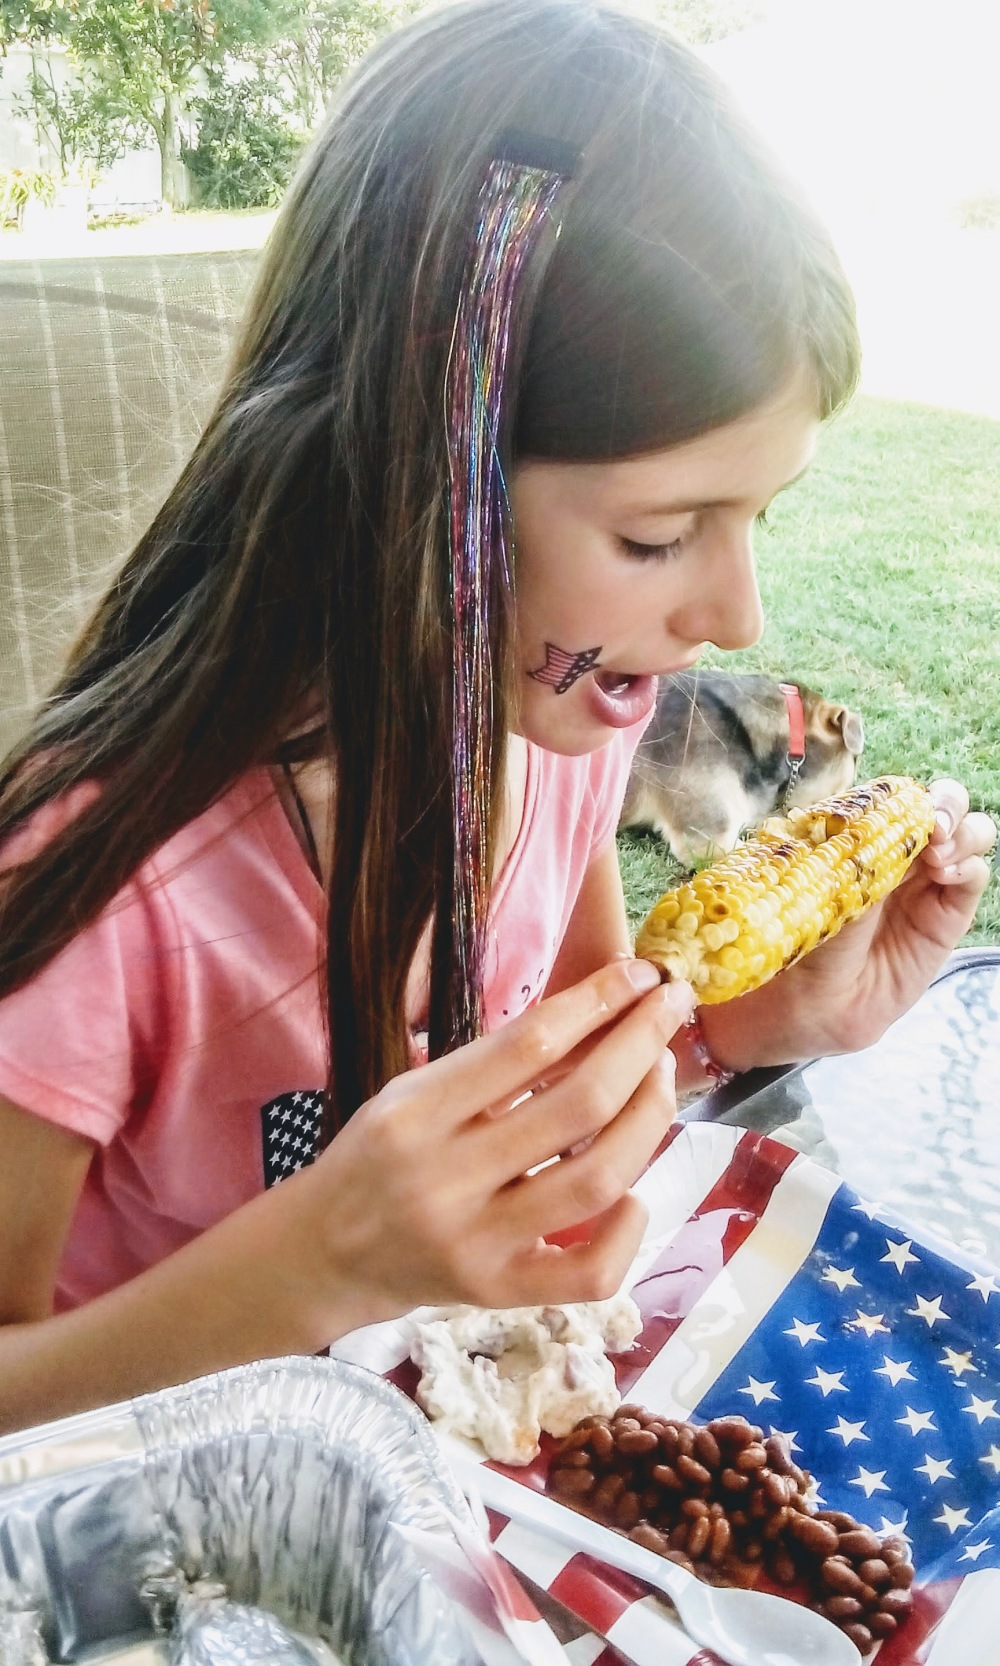 girl eating corn on the cob 4th of july